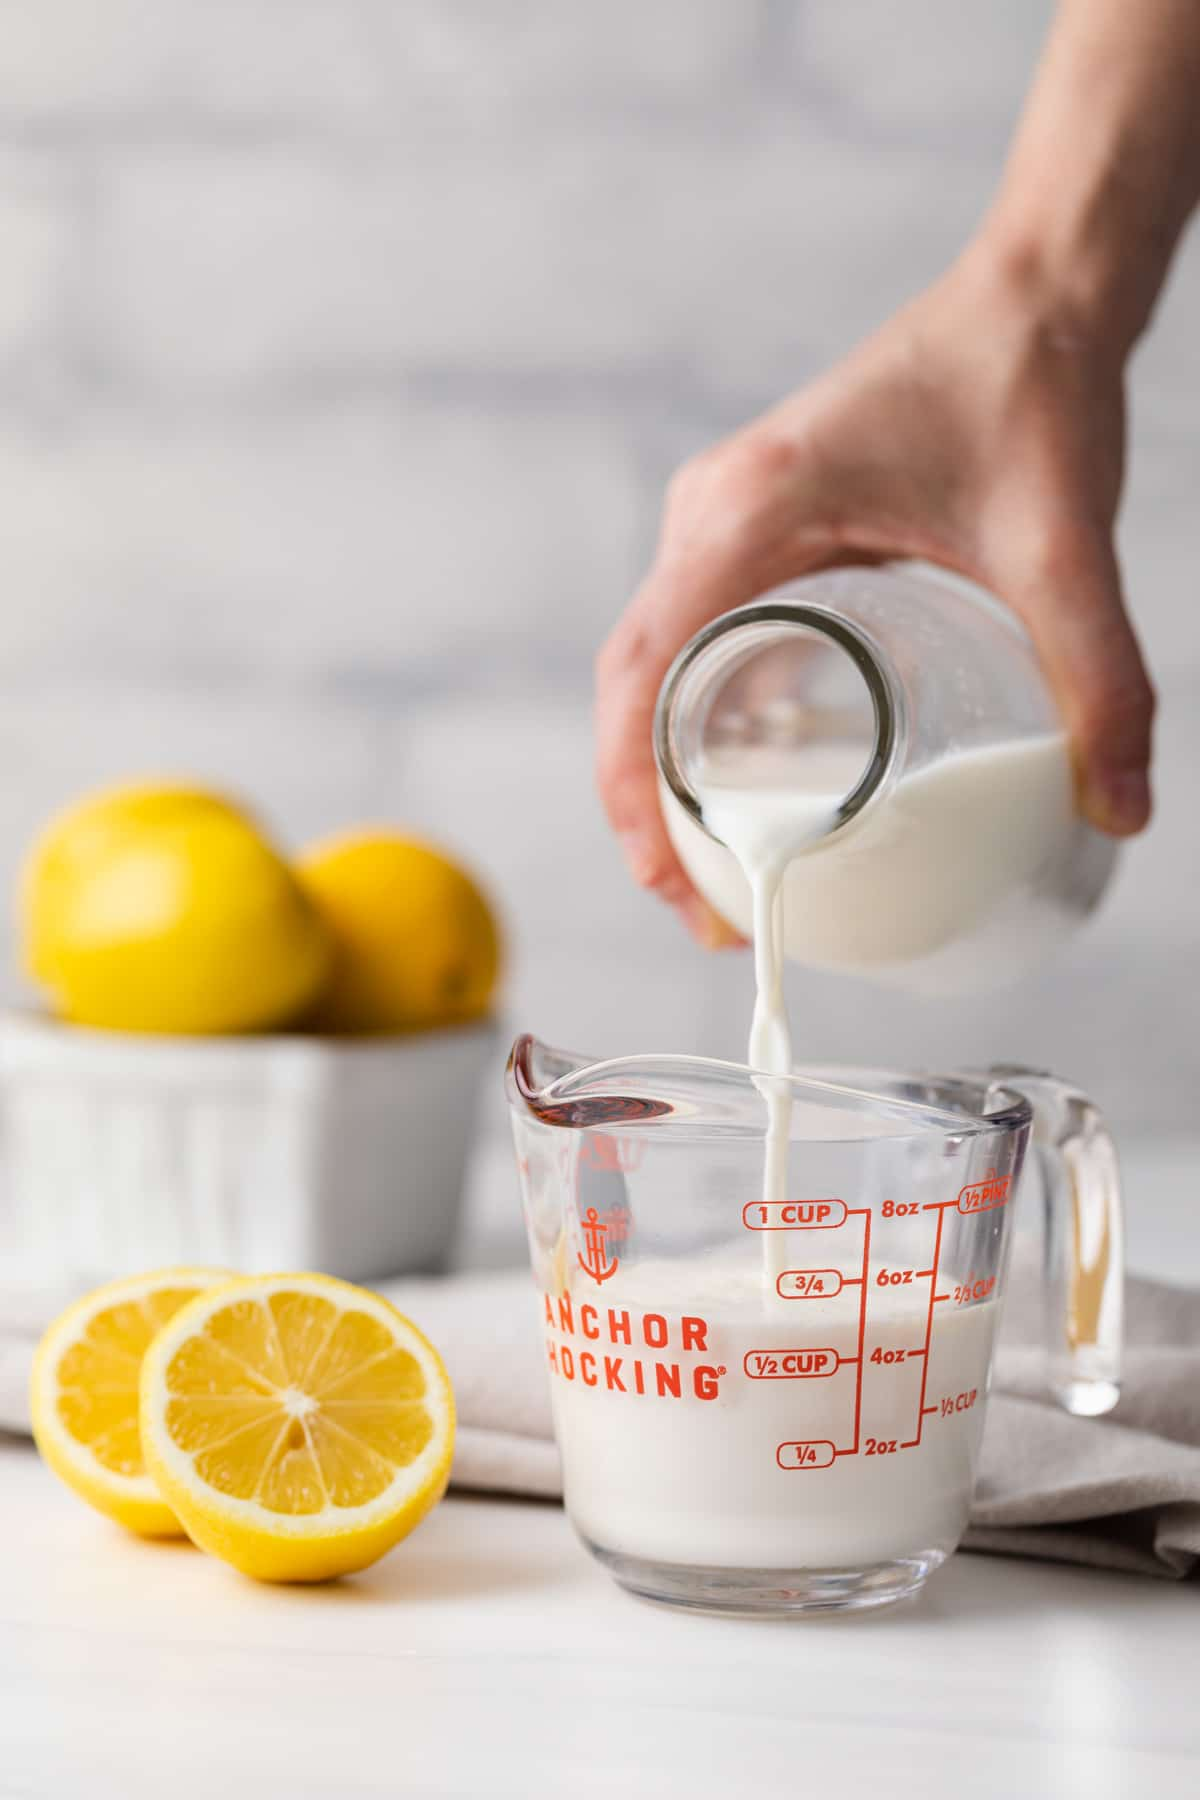 a glass measuring cup being filling with milk along with lemons and napkin in background